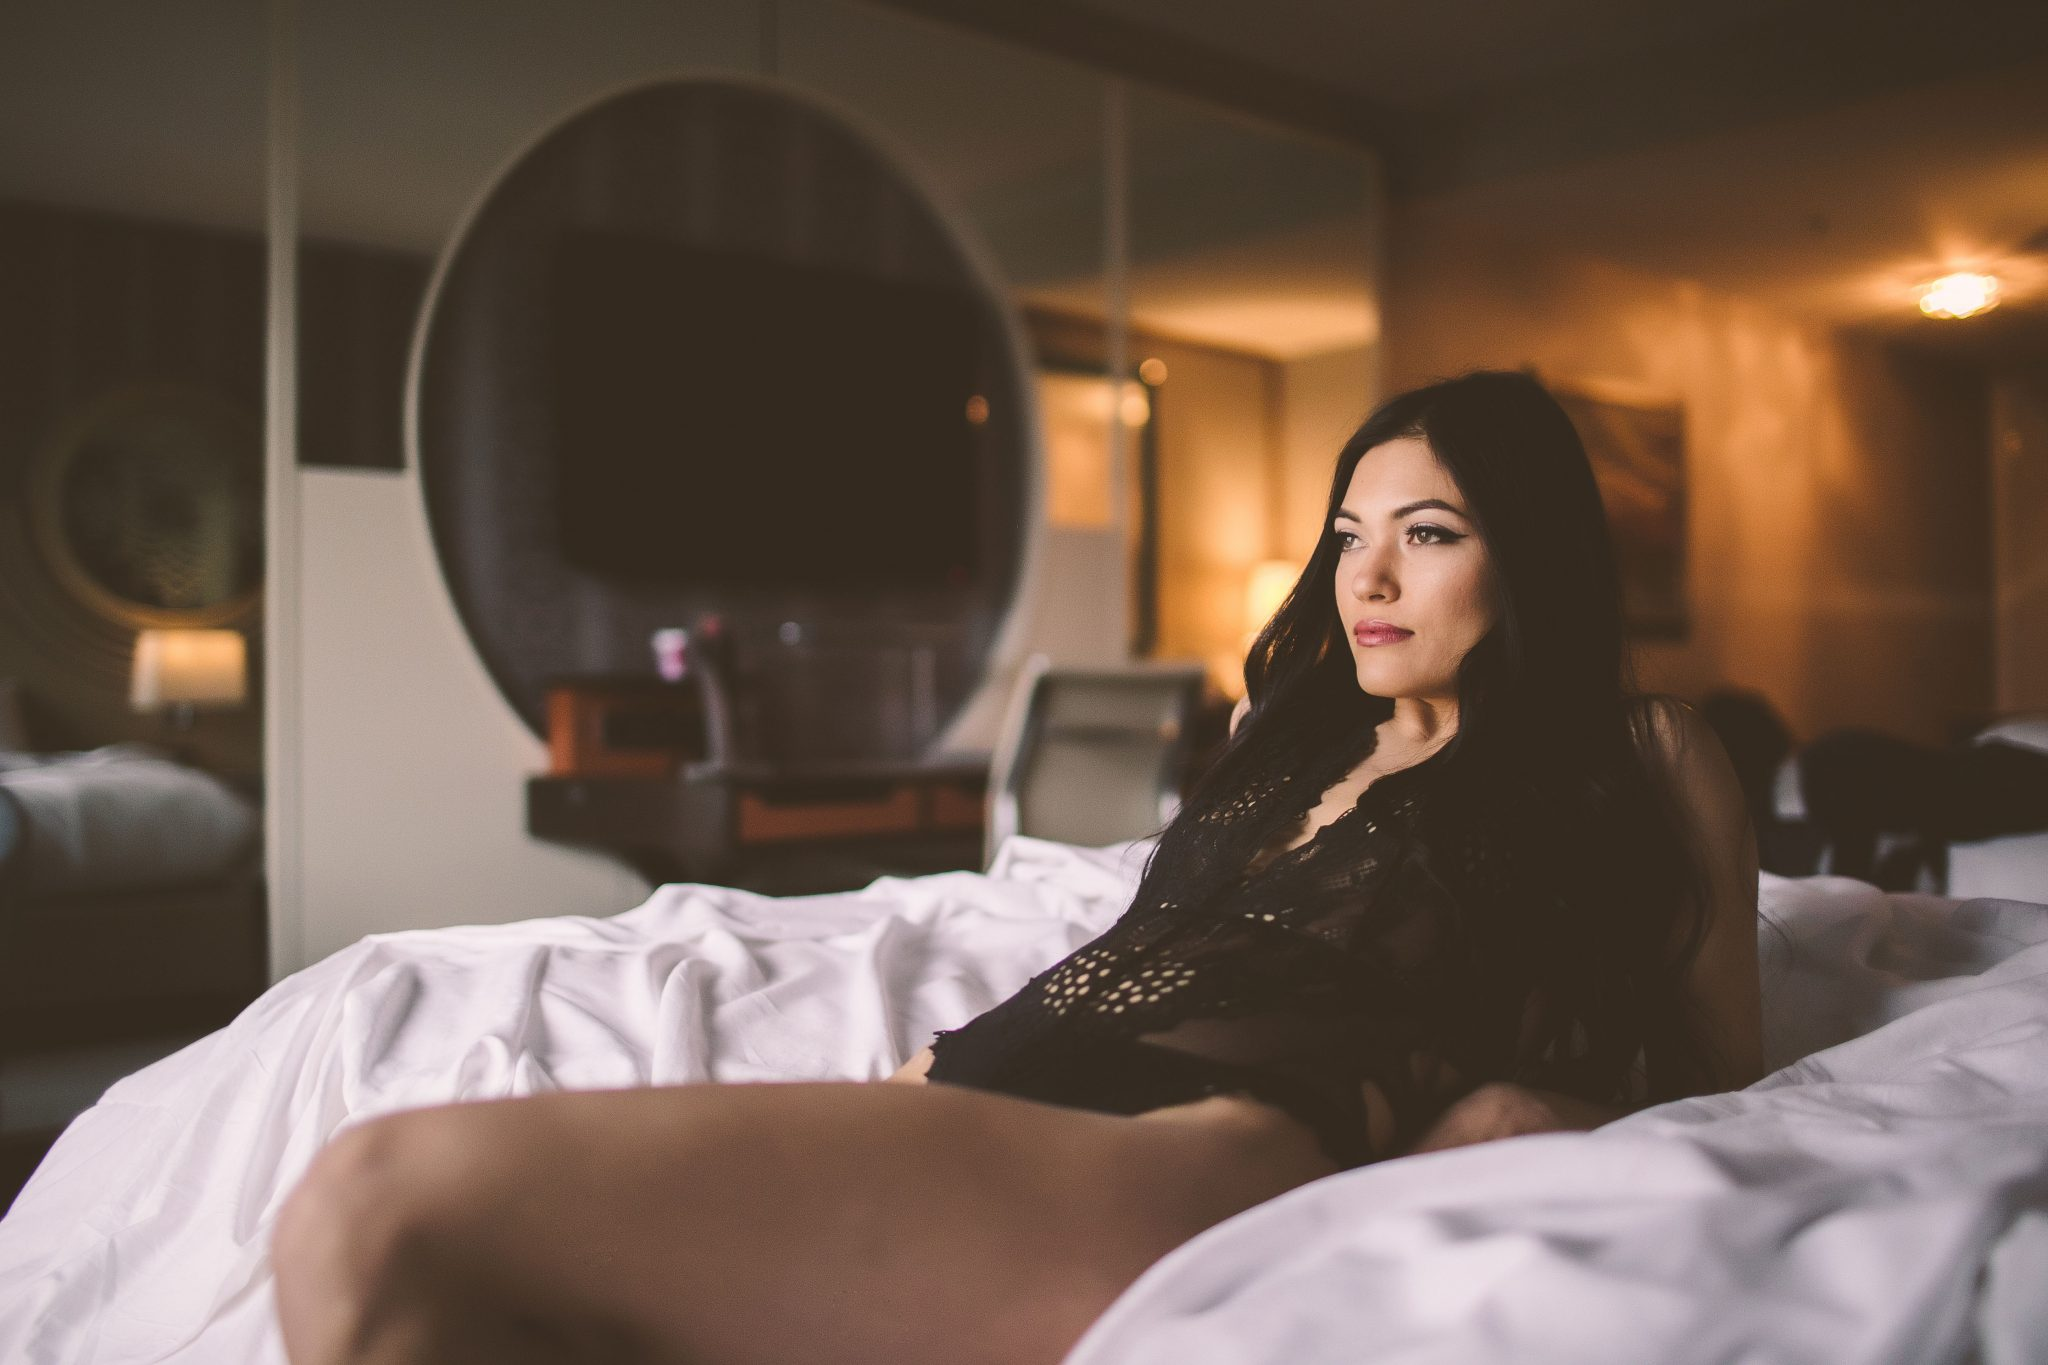 A model leaning back on a bed during a photo session